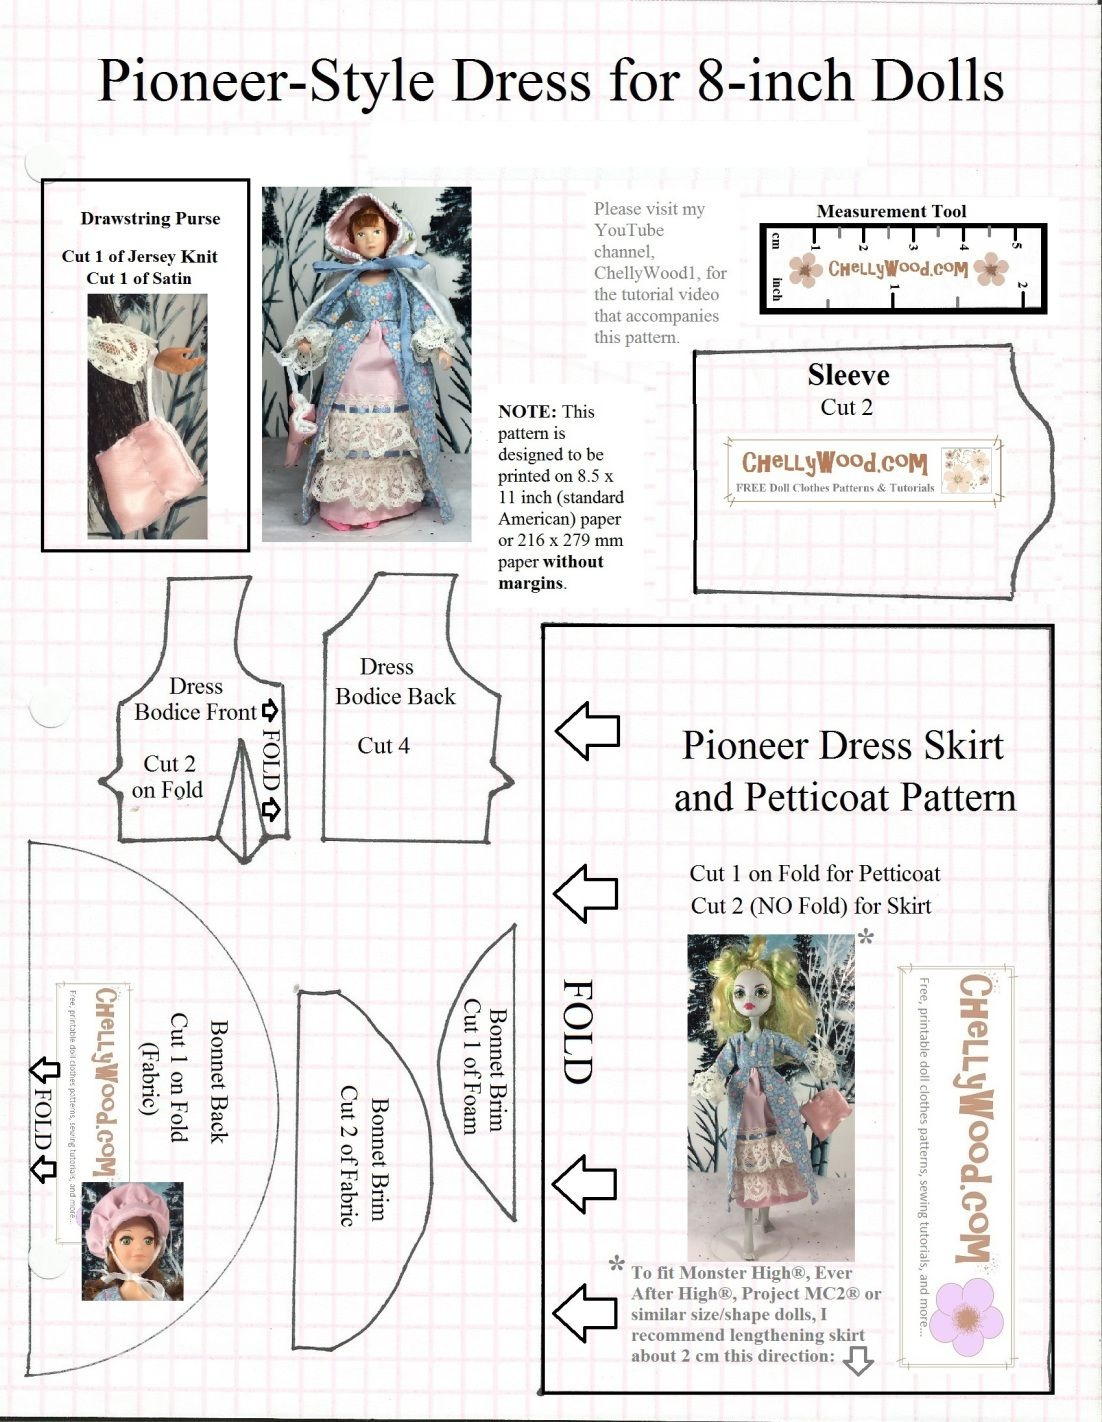 Free Printable Sewing Patterns For Monster High And Ever After - Free Printable Patterns For Sewing Doll Clothes